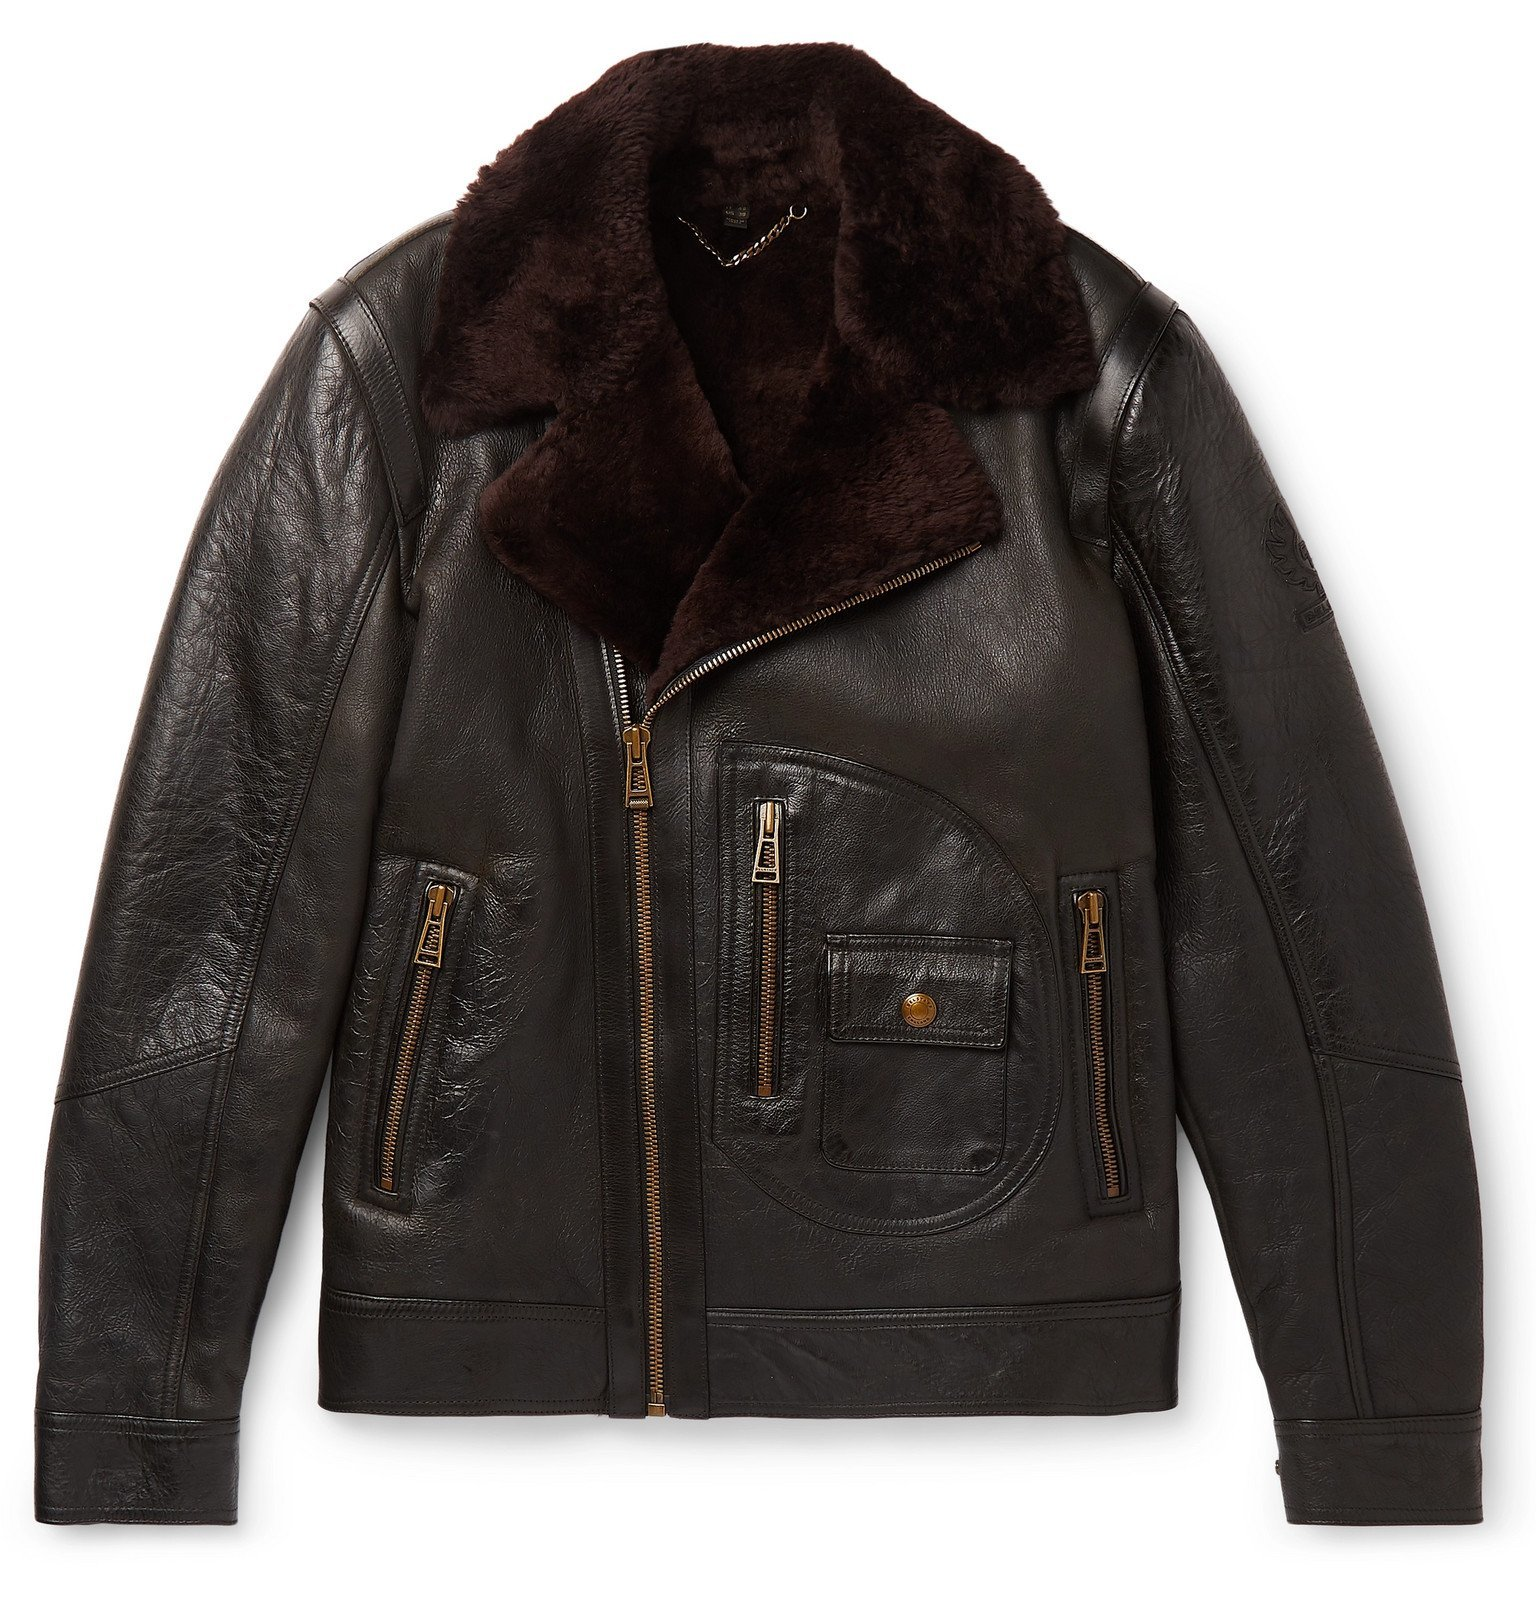 Belstaff - Danescroft Slim-Fit Shearling-Lined Leather Jacket - Black